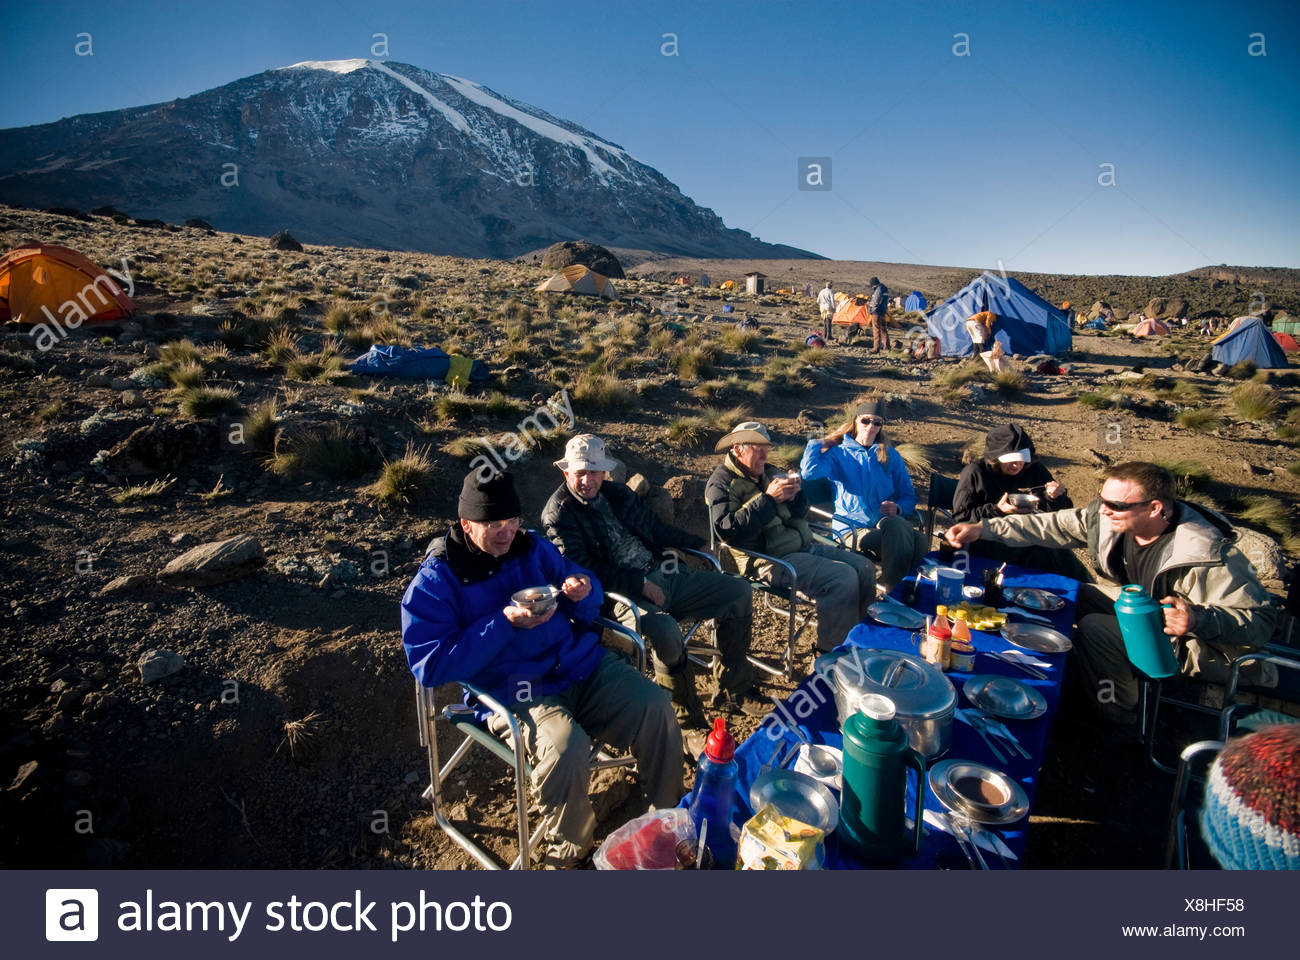 A team of hikers have a nice breakfast at sunrise about 1000 ft. below the summit of Mt. Kilimanjaro. - Stock Image